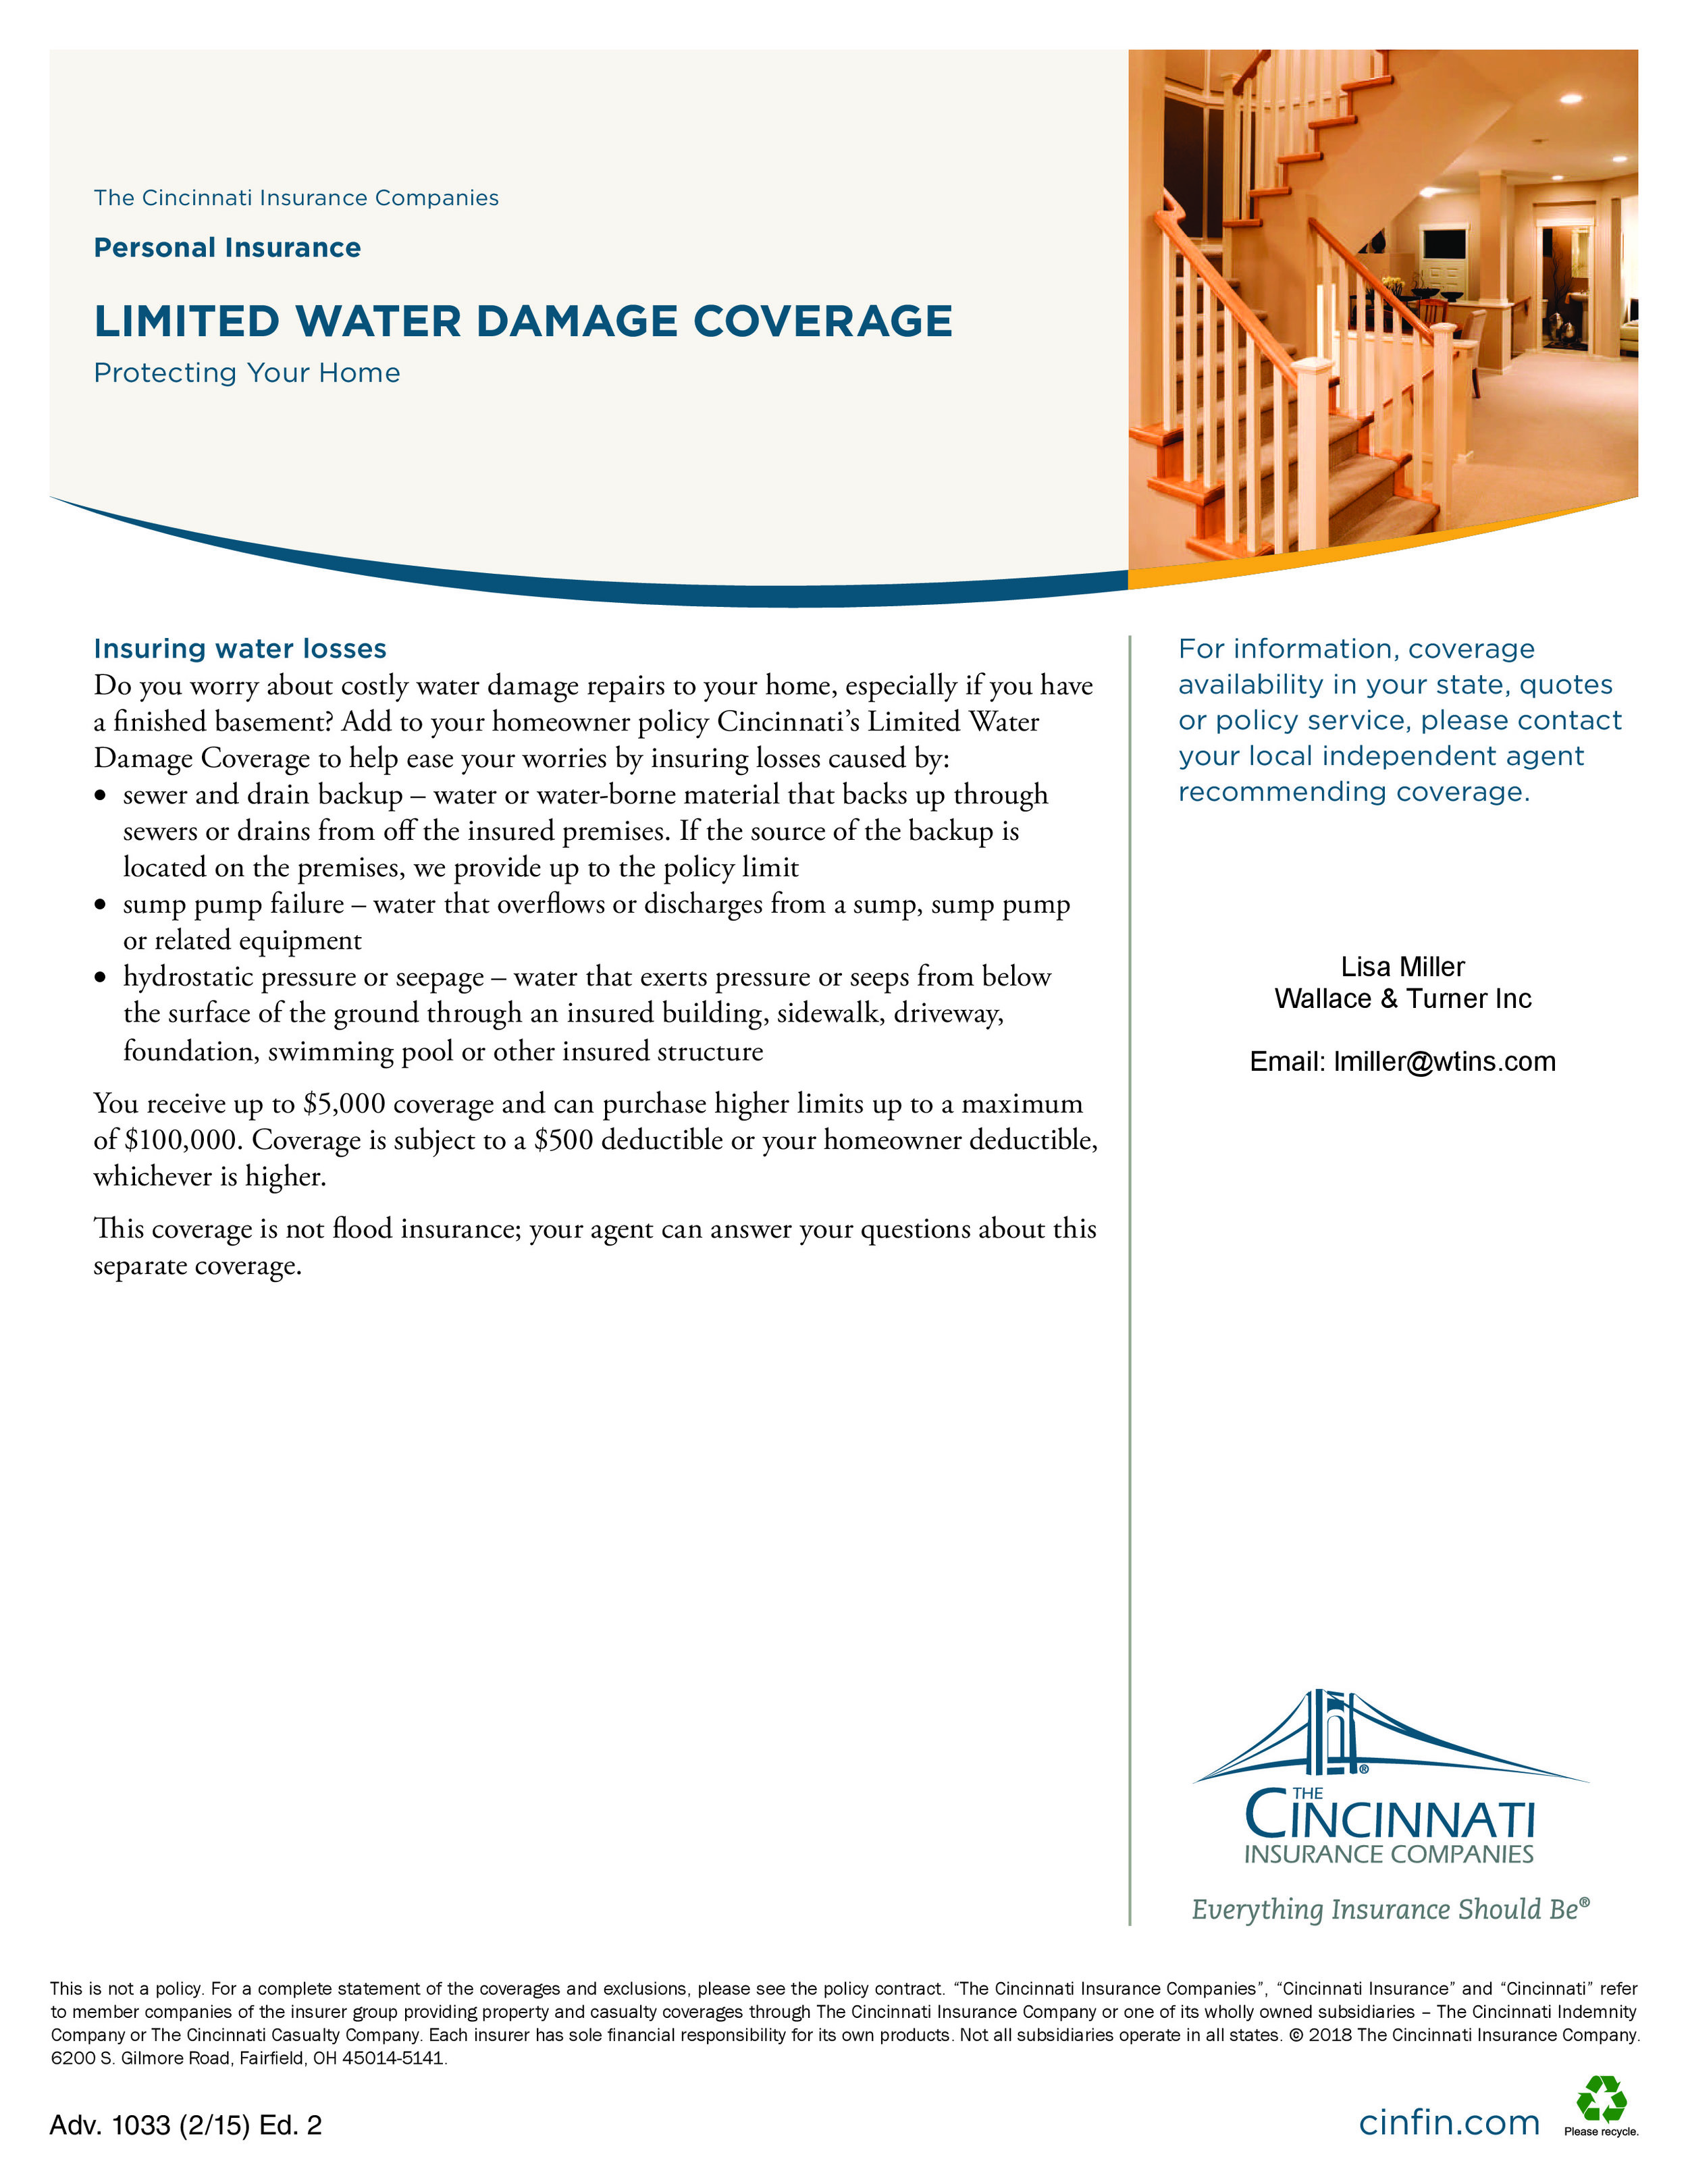 Limited Water Damage Coverage